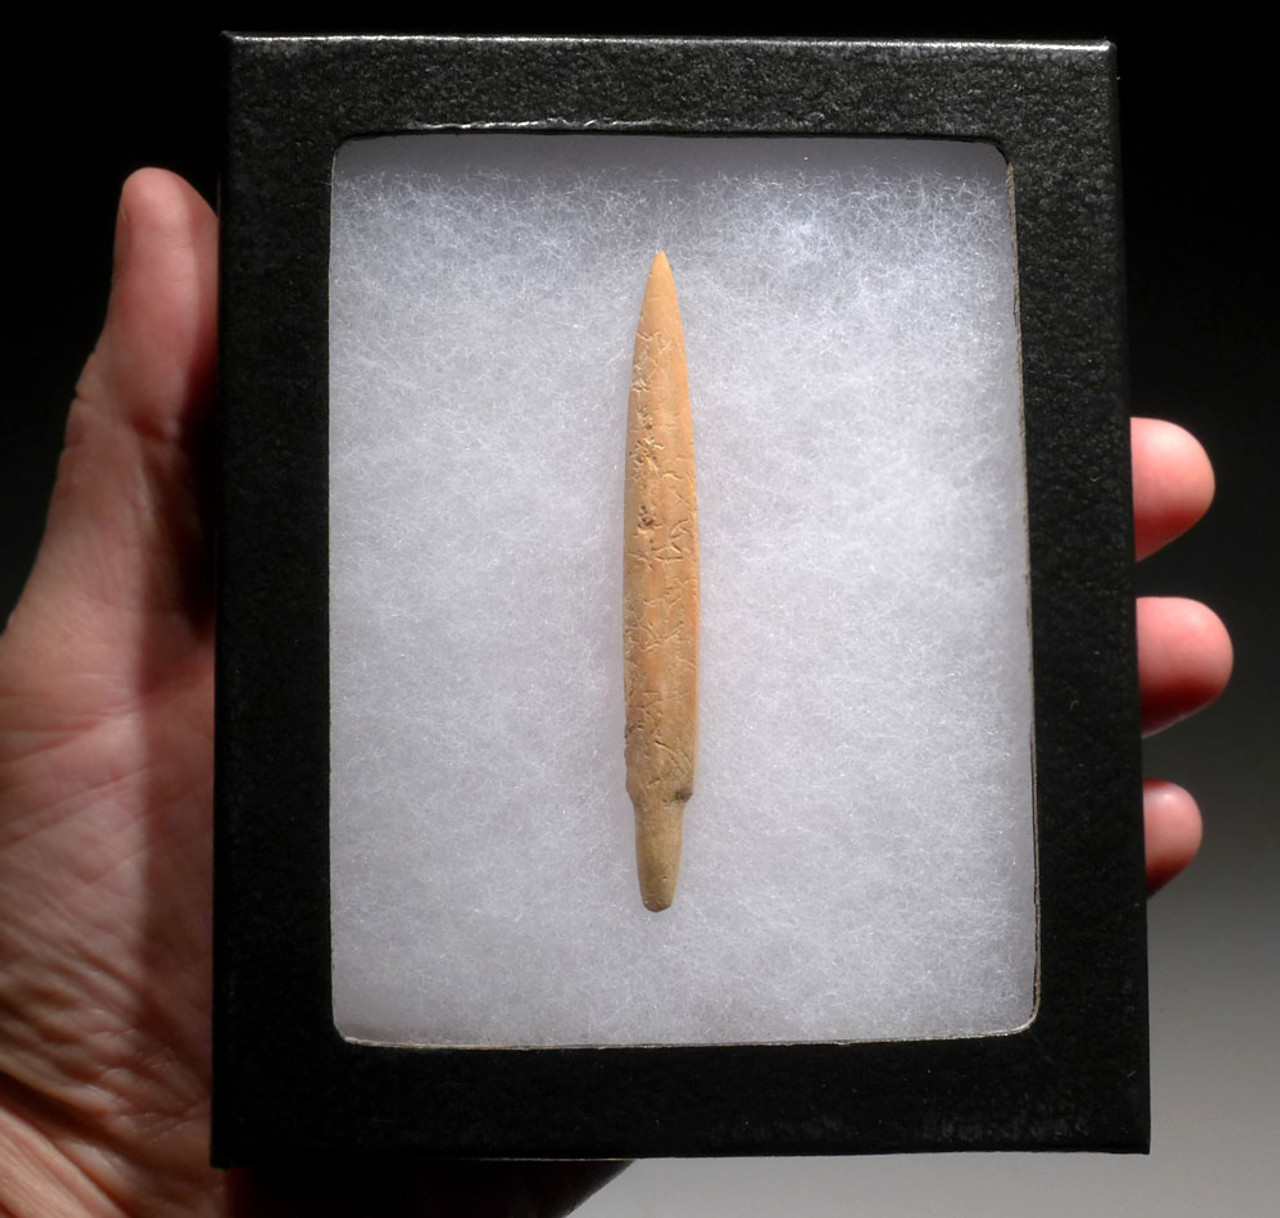 RARE BONE ARROWHEAD FROM THE BRONZE AGE NEAR EASTERN LURISTAN CULTURE *LUR131